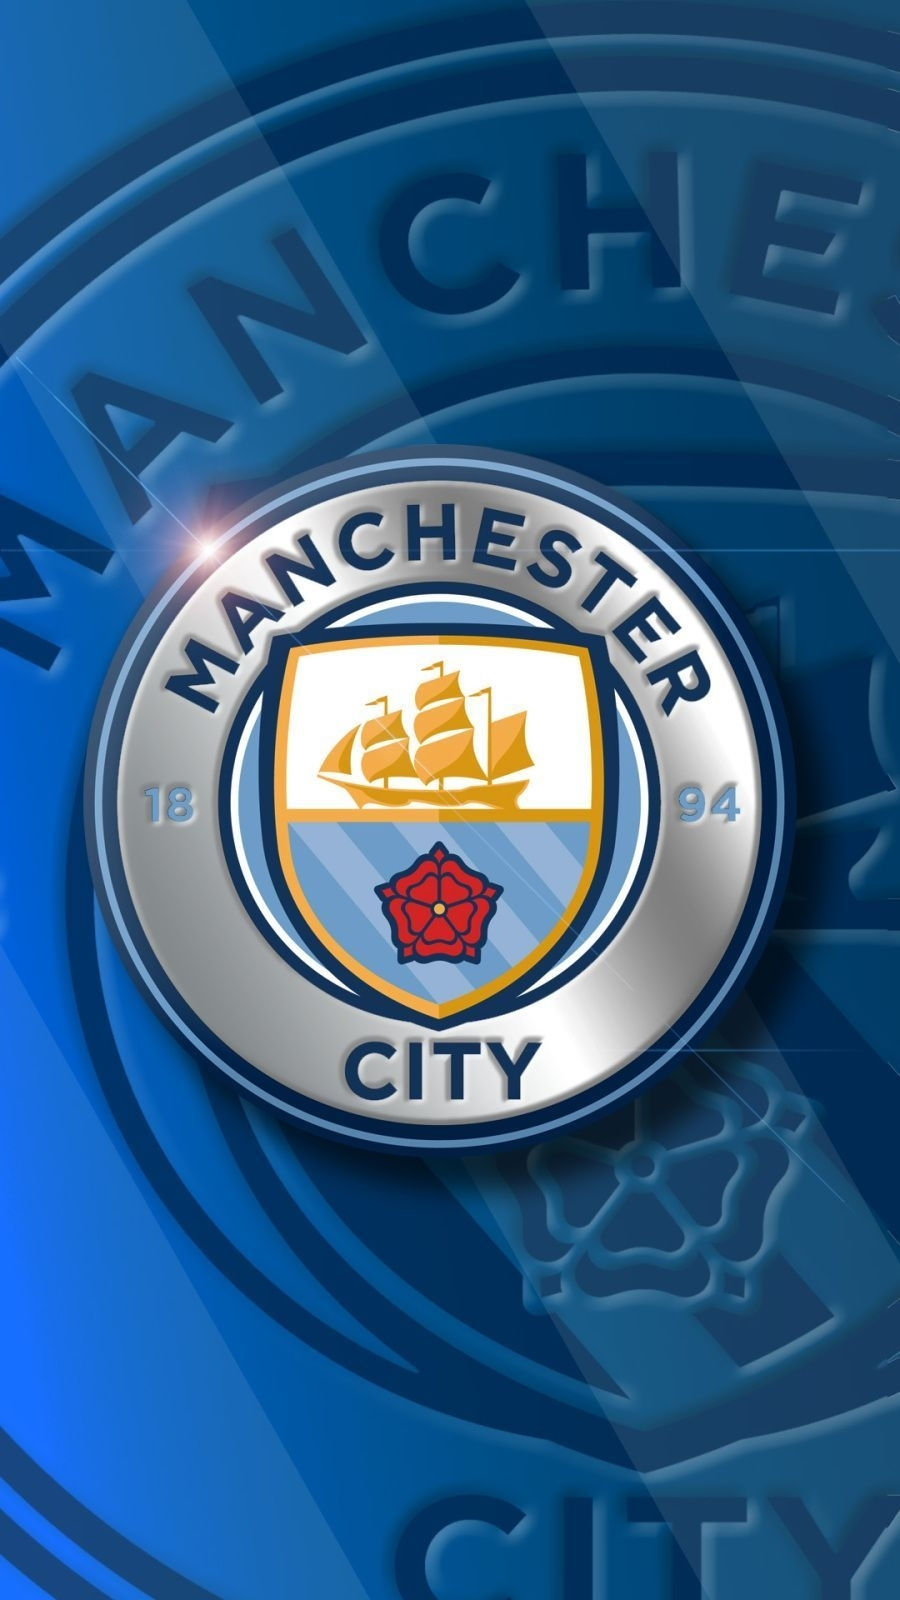 10 New Man City Iphone Wallpaper FULL HD 1920×1080 For PC ...